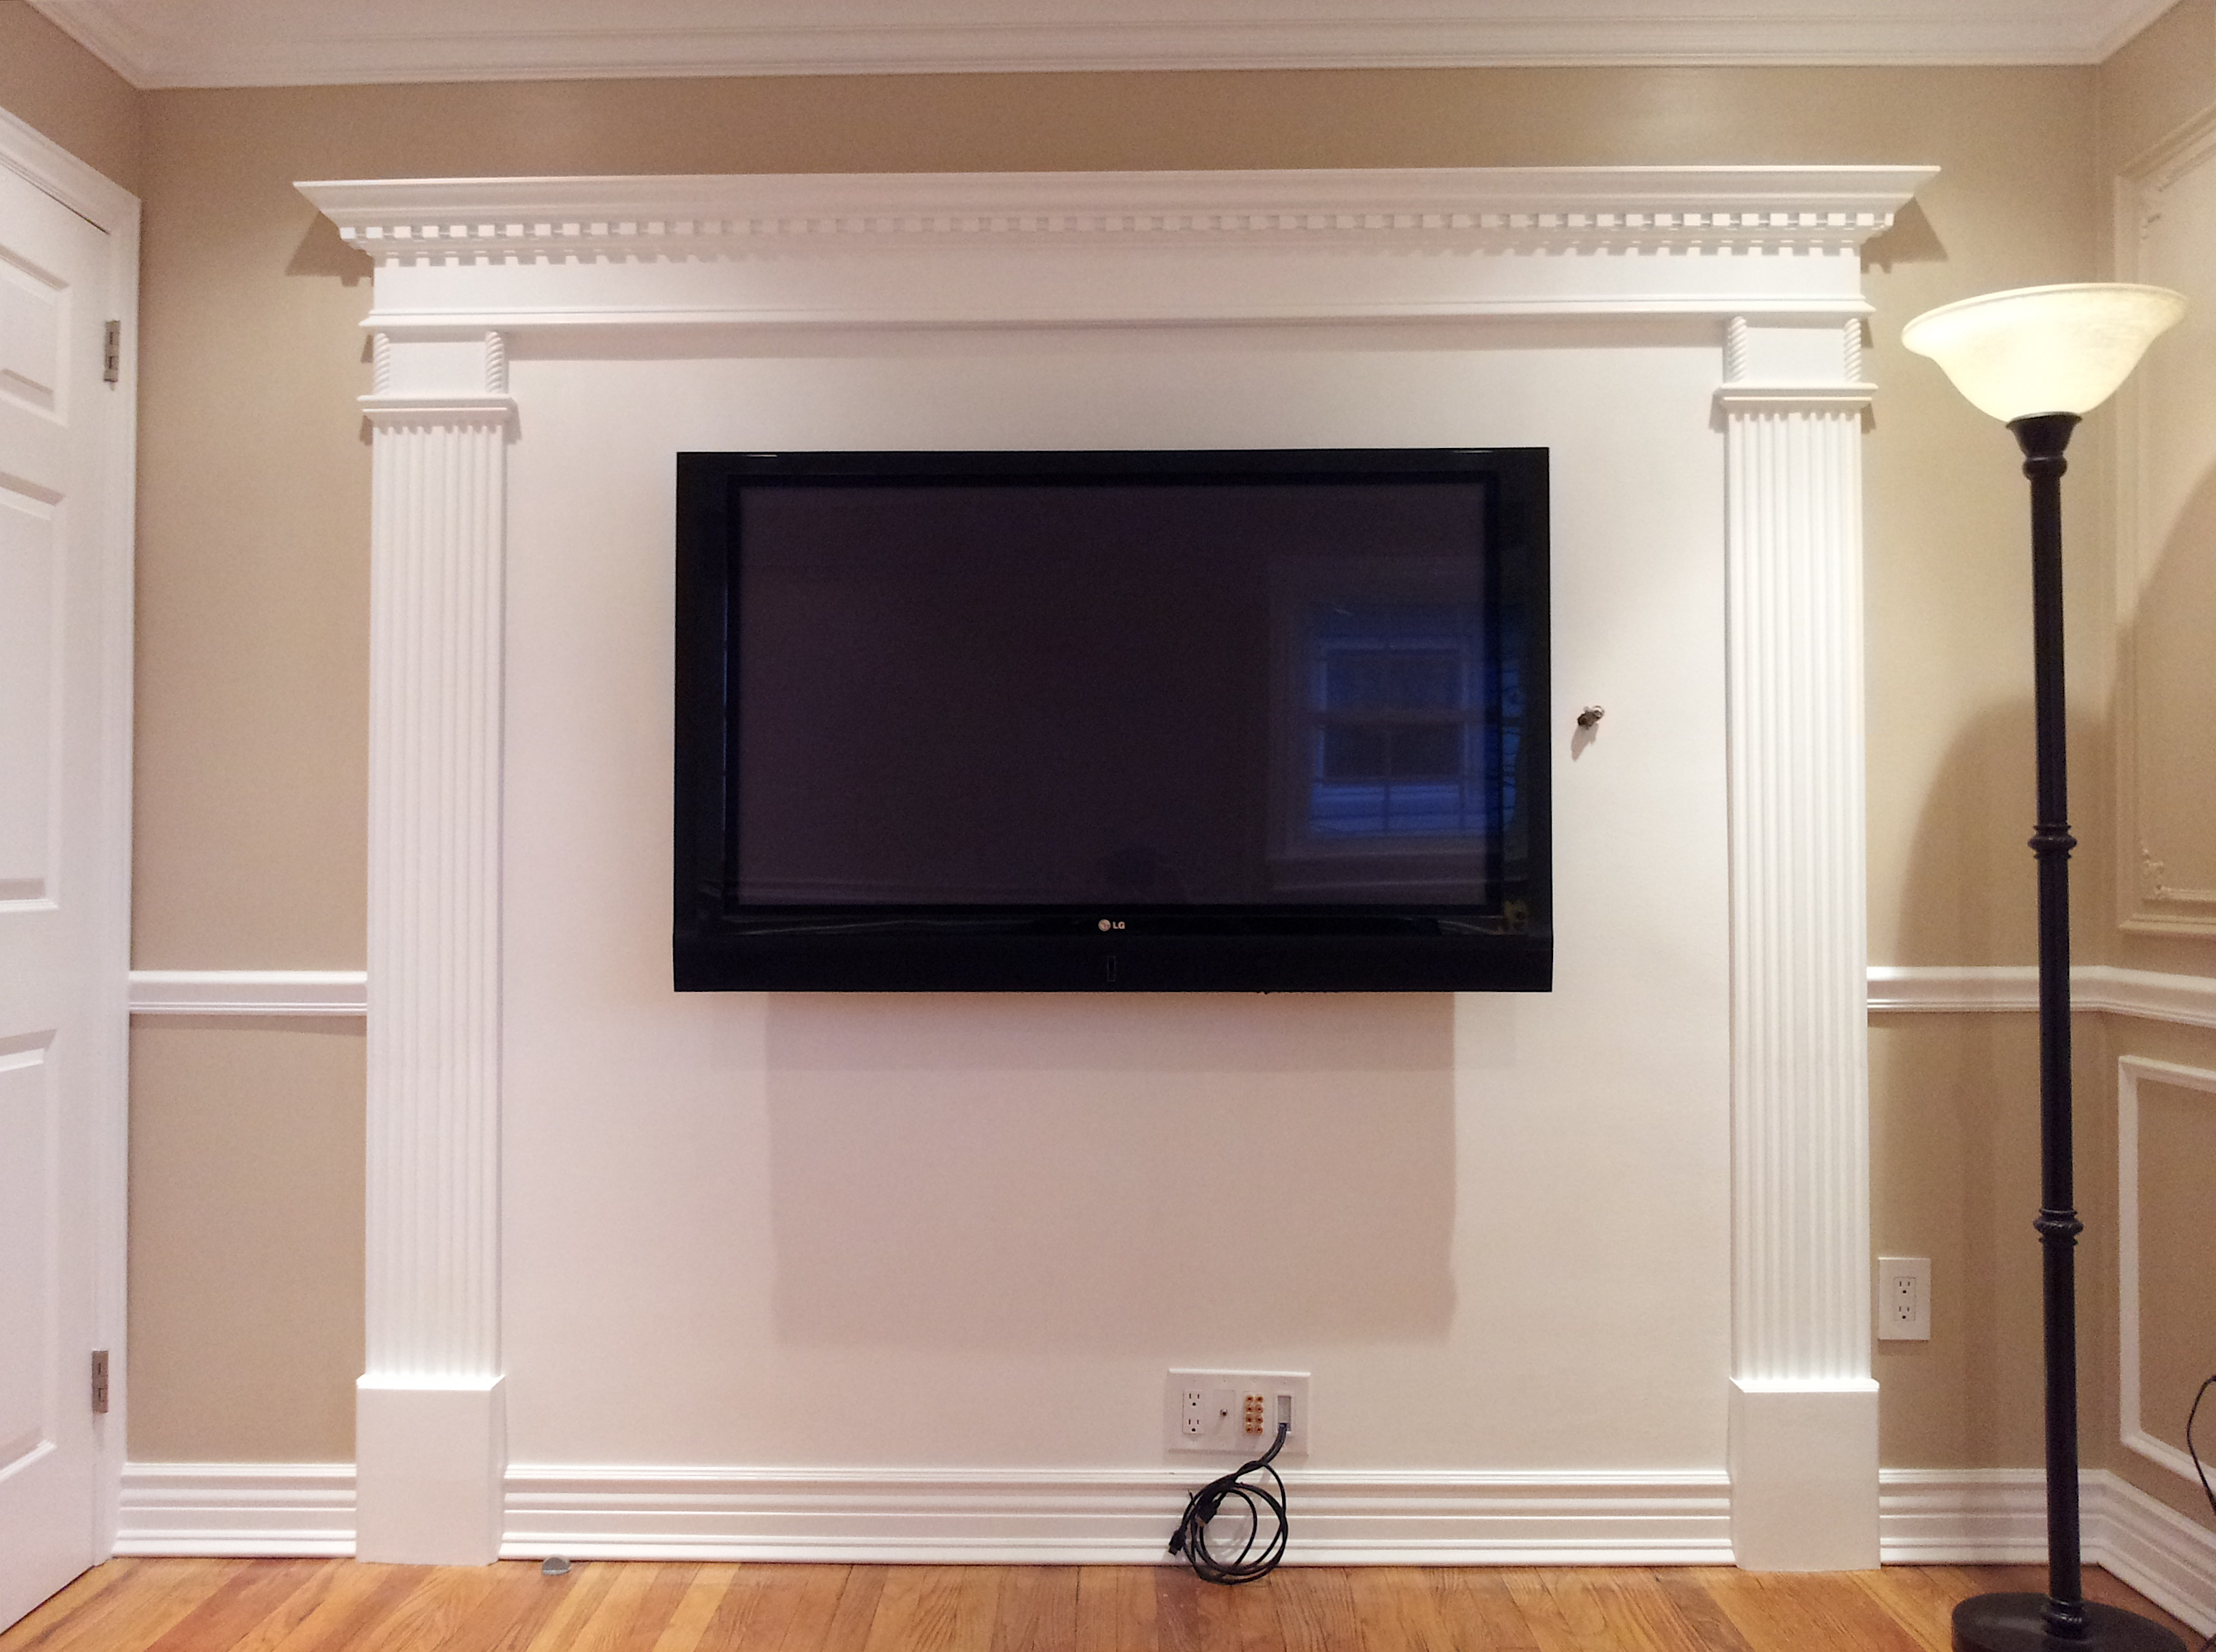 BASIC TV MOUNTING SERVICES